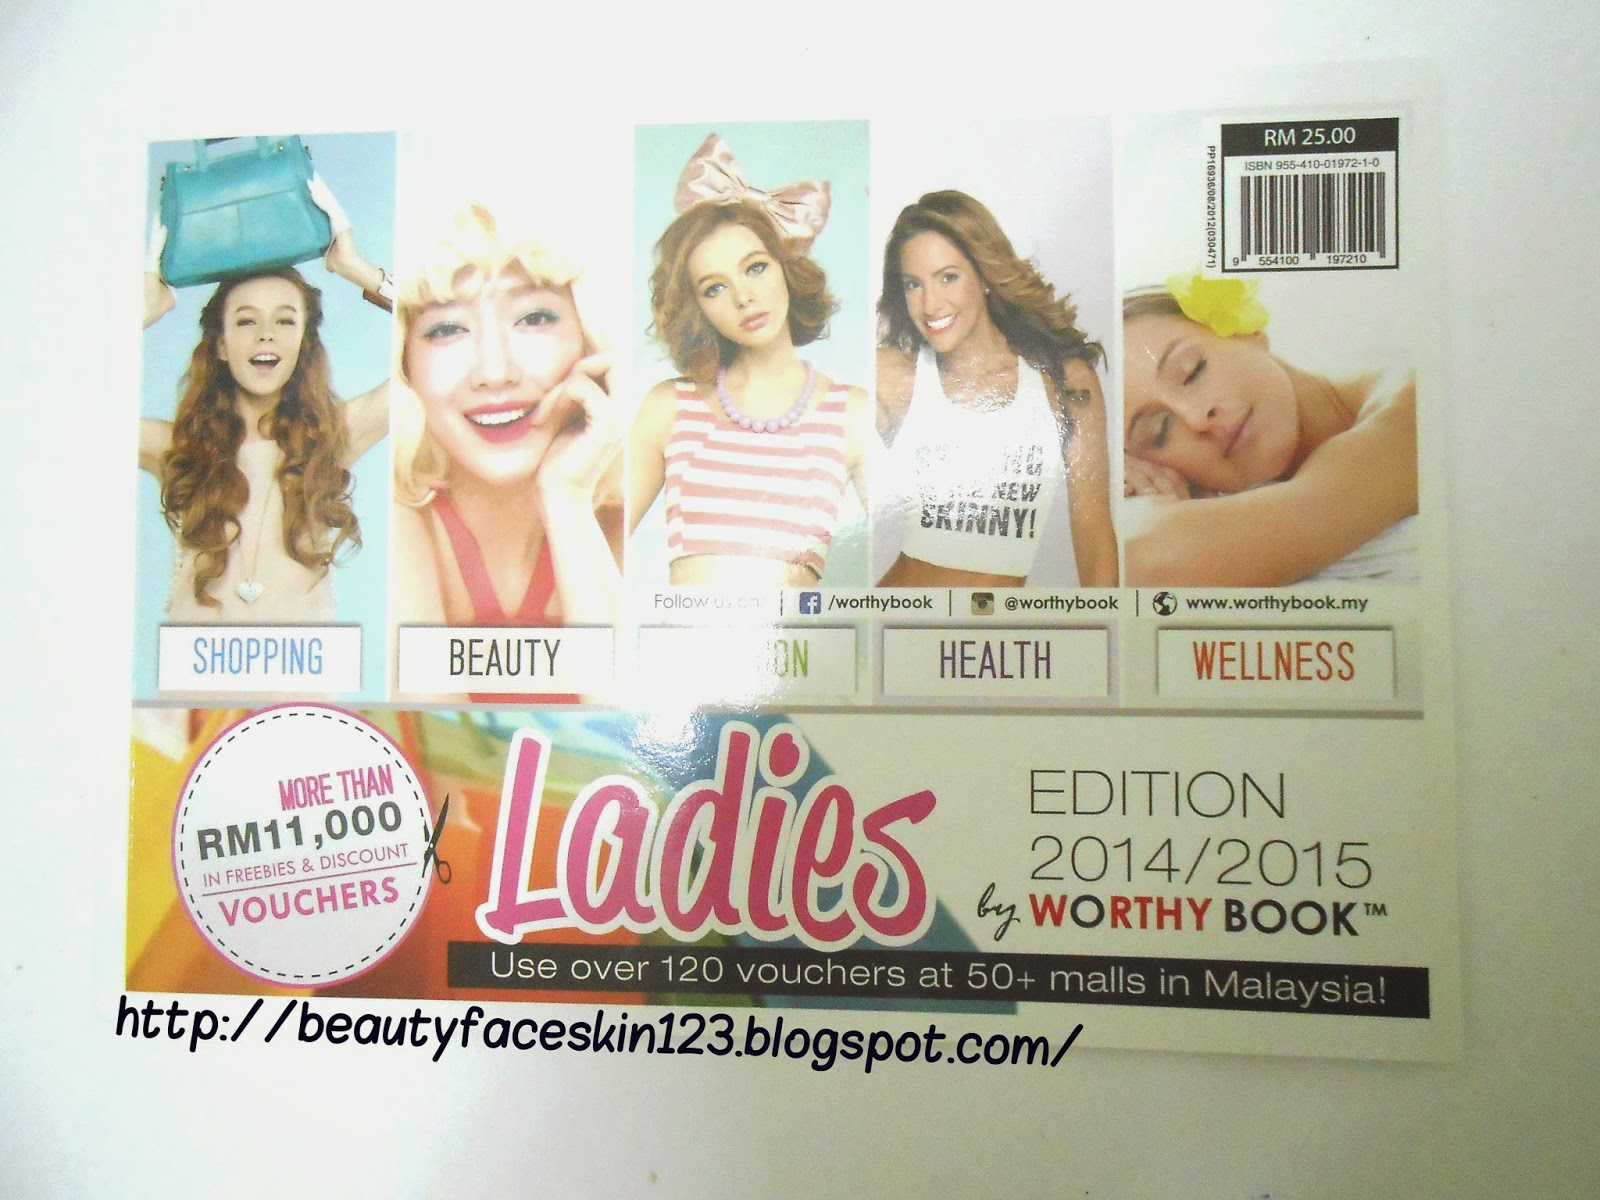 REVIEW ON WORTHY BOOK LADIES EDITION 2014/2015